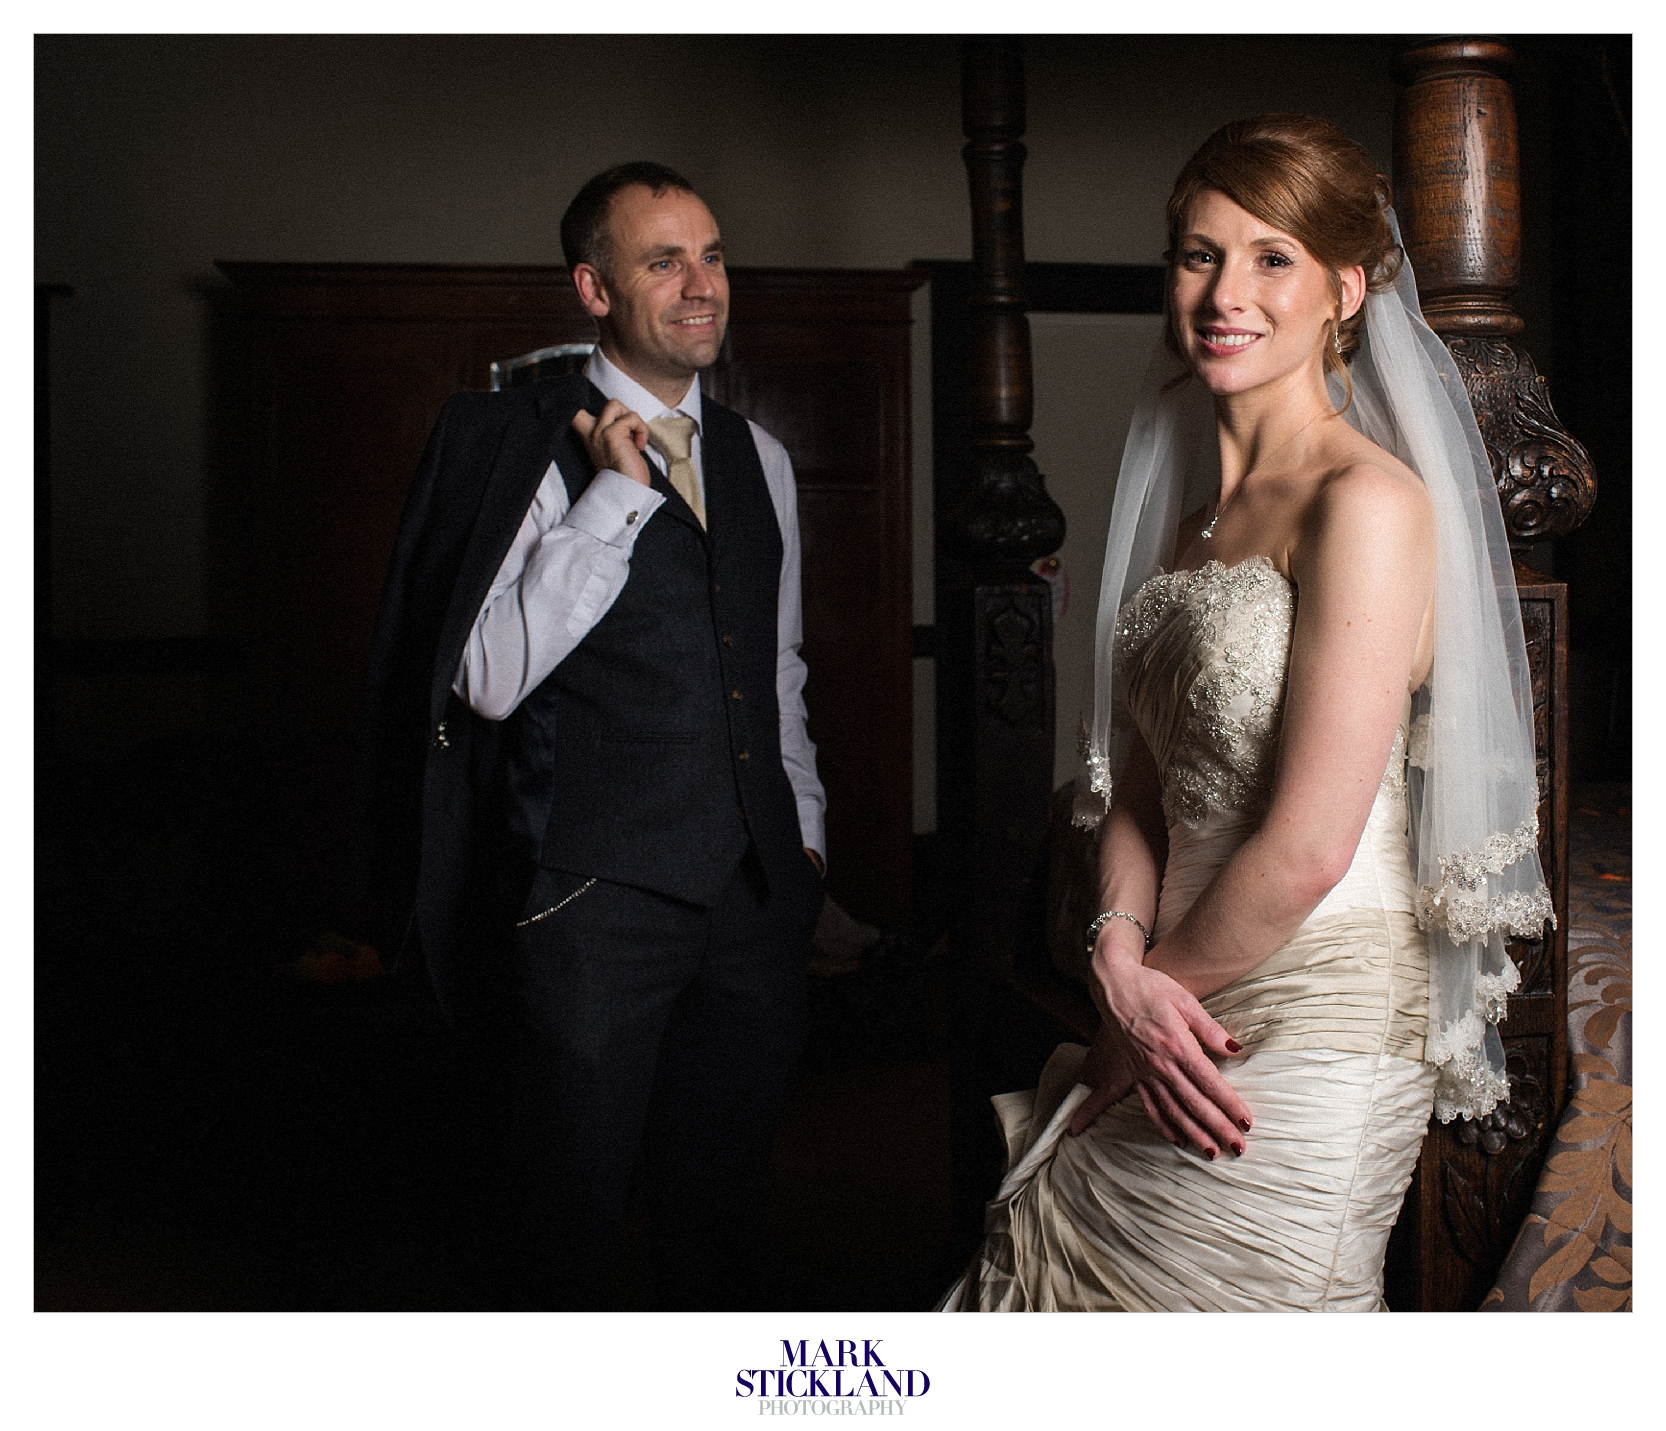 langtry manor hotel_wedding_bournemouth_dorset_mark stickland photography._0024